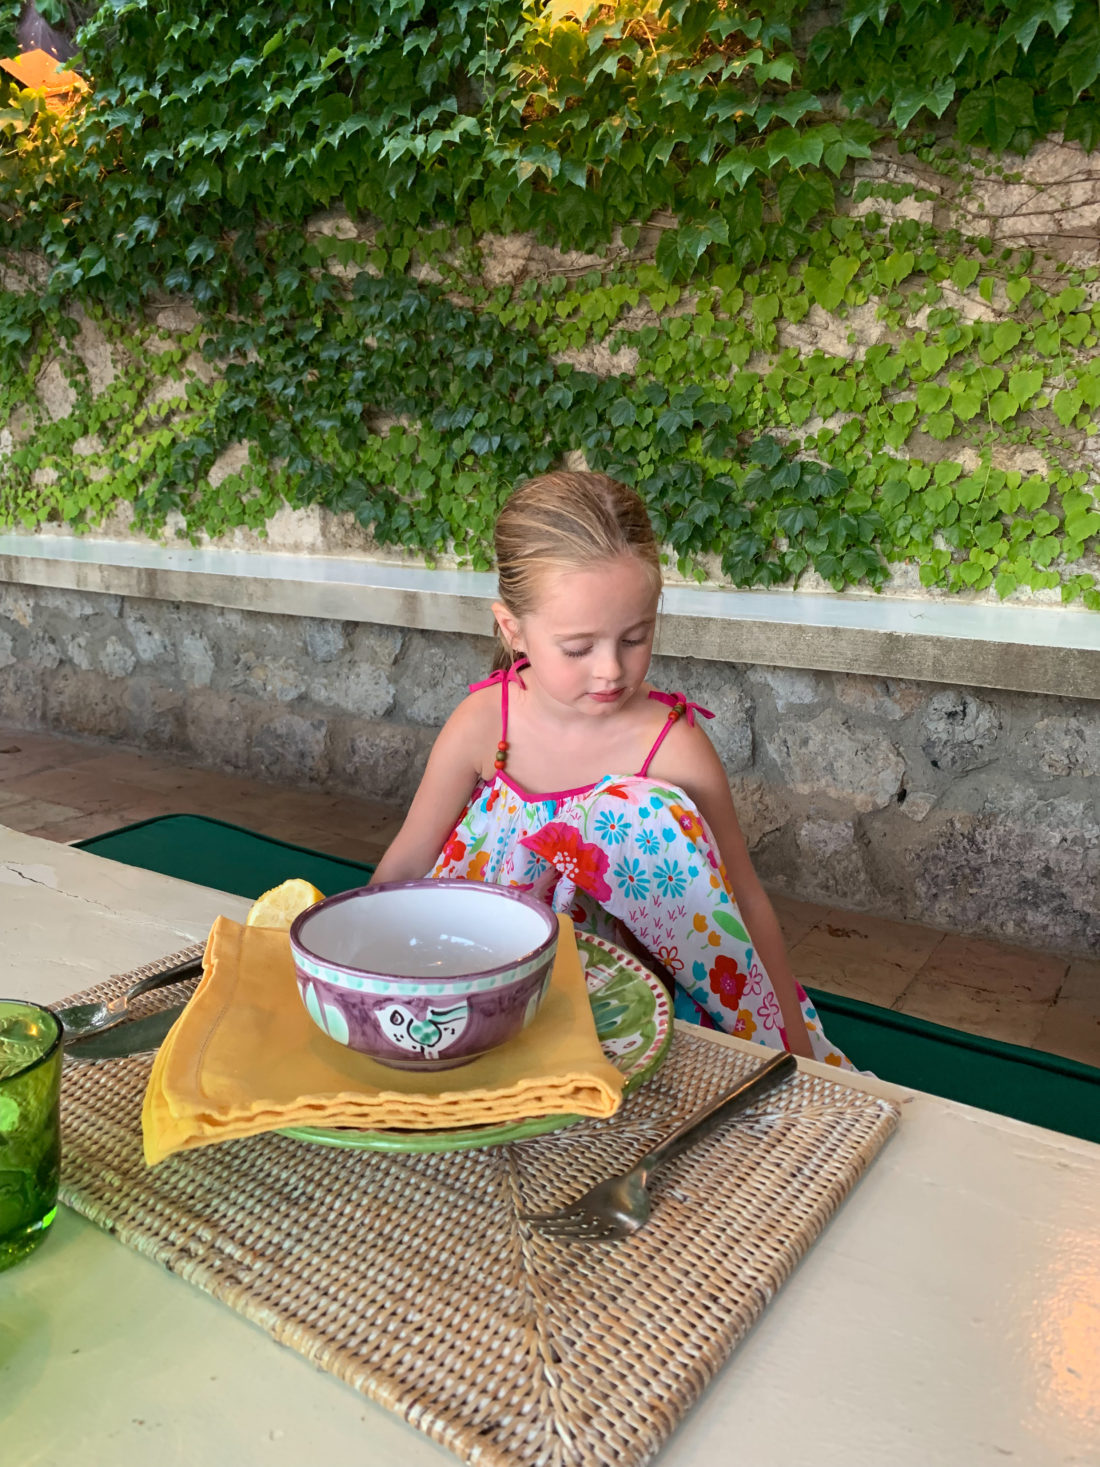 Marlowe Martino enjoying some lunch by the water in Italy